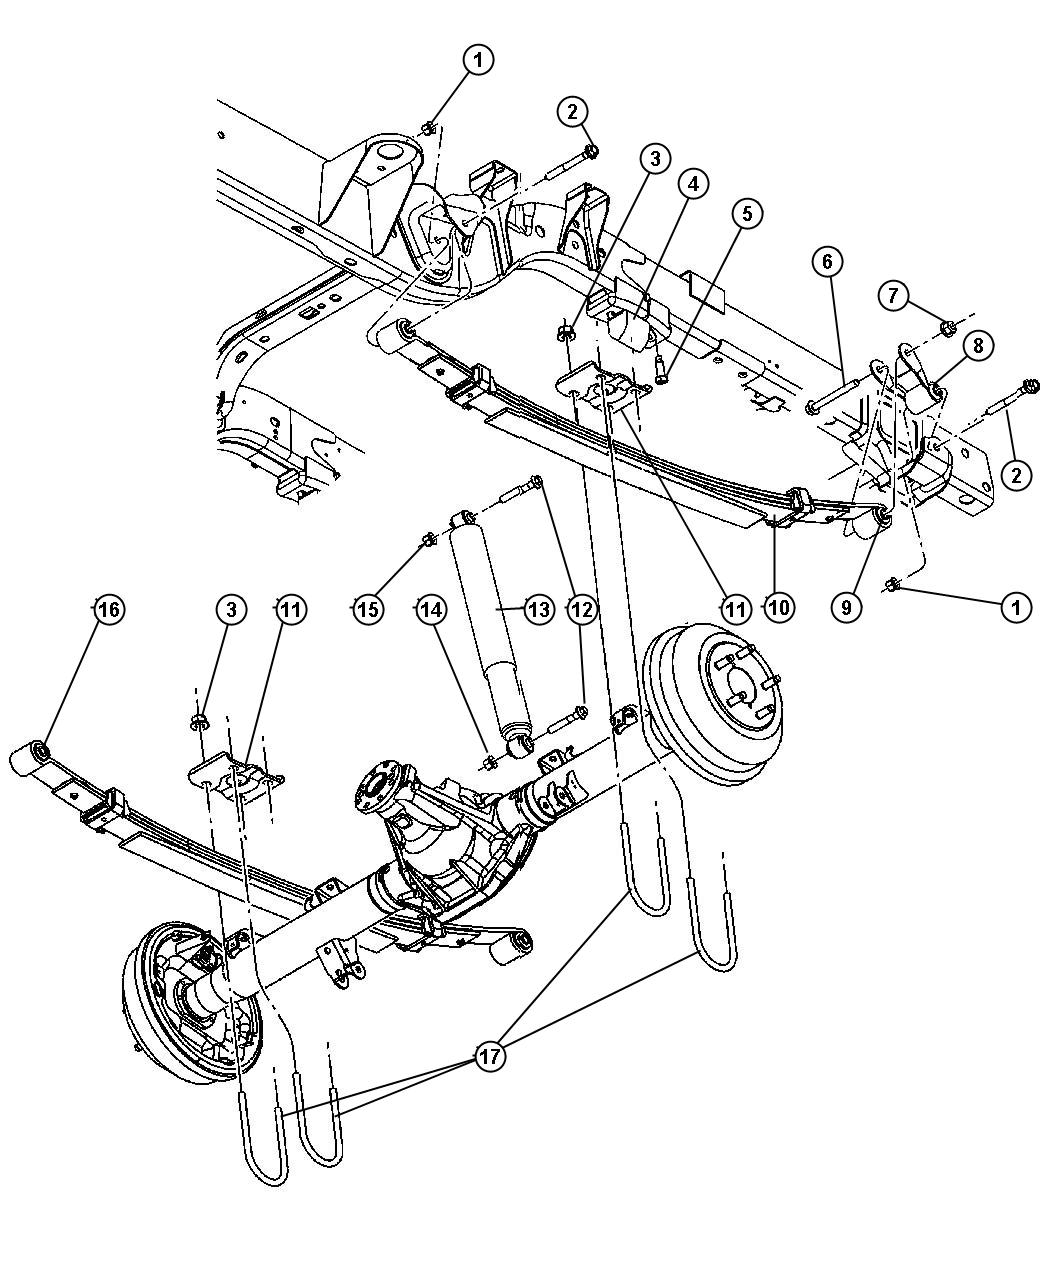 P38751 Gmc 1 Ton Front End Diagram furthermore Inner Tie Rod End Location also P 0996b43f802e310f in addition P 0996b43f8037d024 in addition 52013545AA. on 2005 dodge dakota sway bar